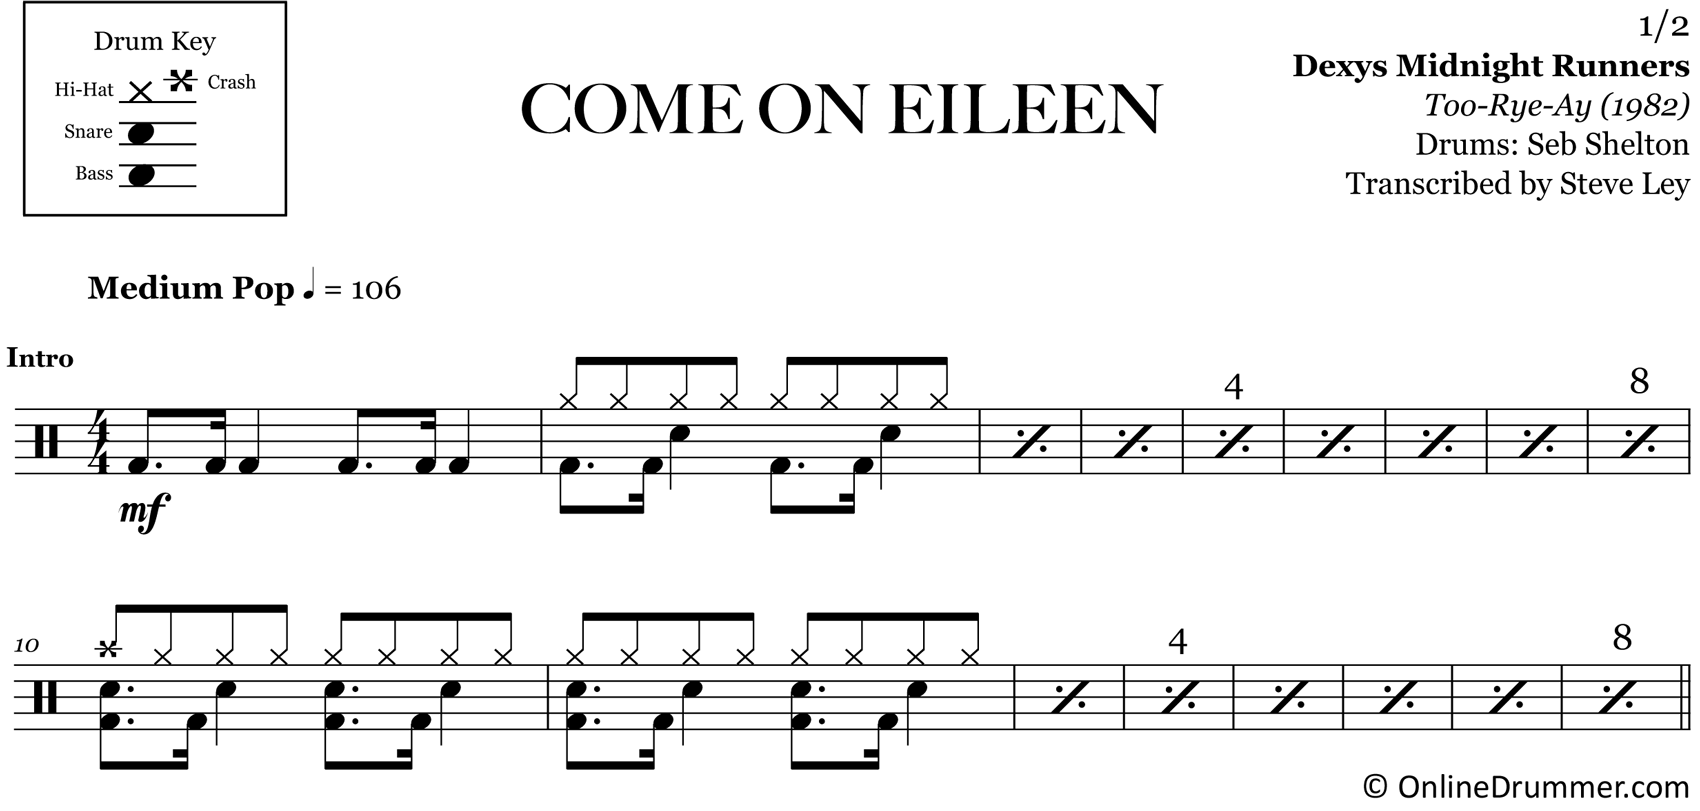 Come On Eileen - Dexys Midnight Runners - Drum Sheet Music